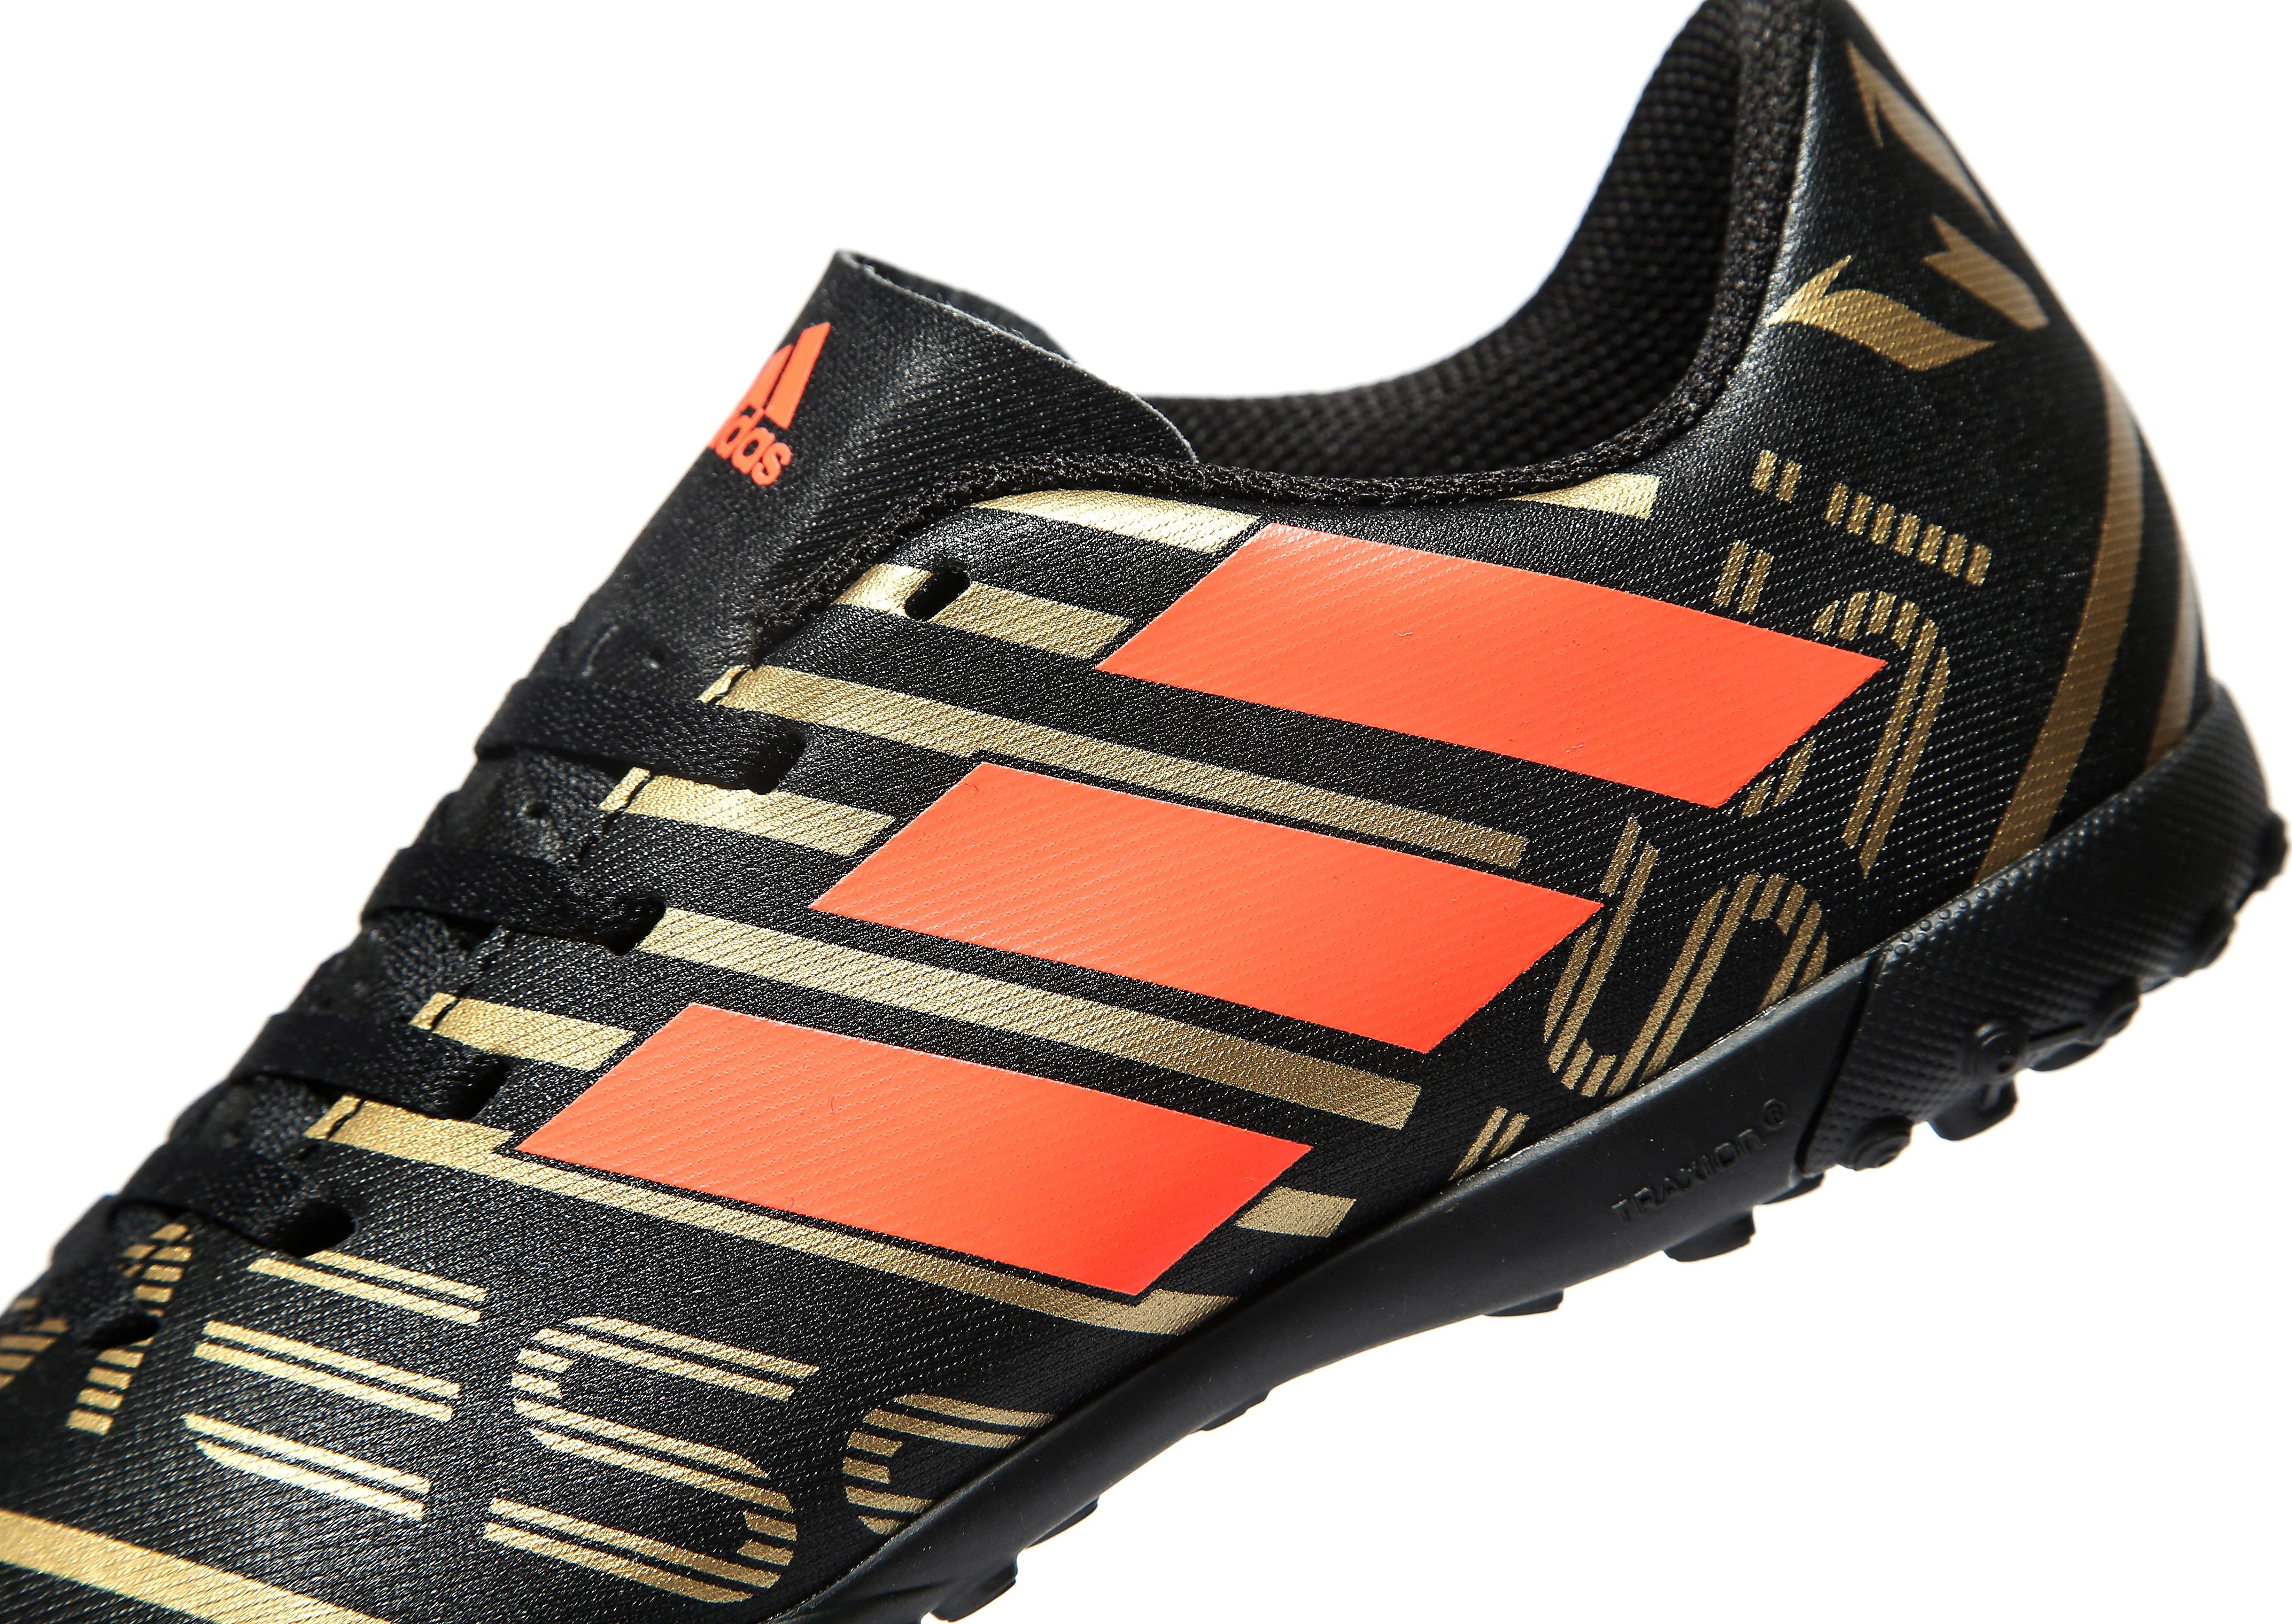 adidas SkyStalker Nemeziz 18.4 TF Messi Children